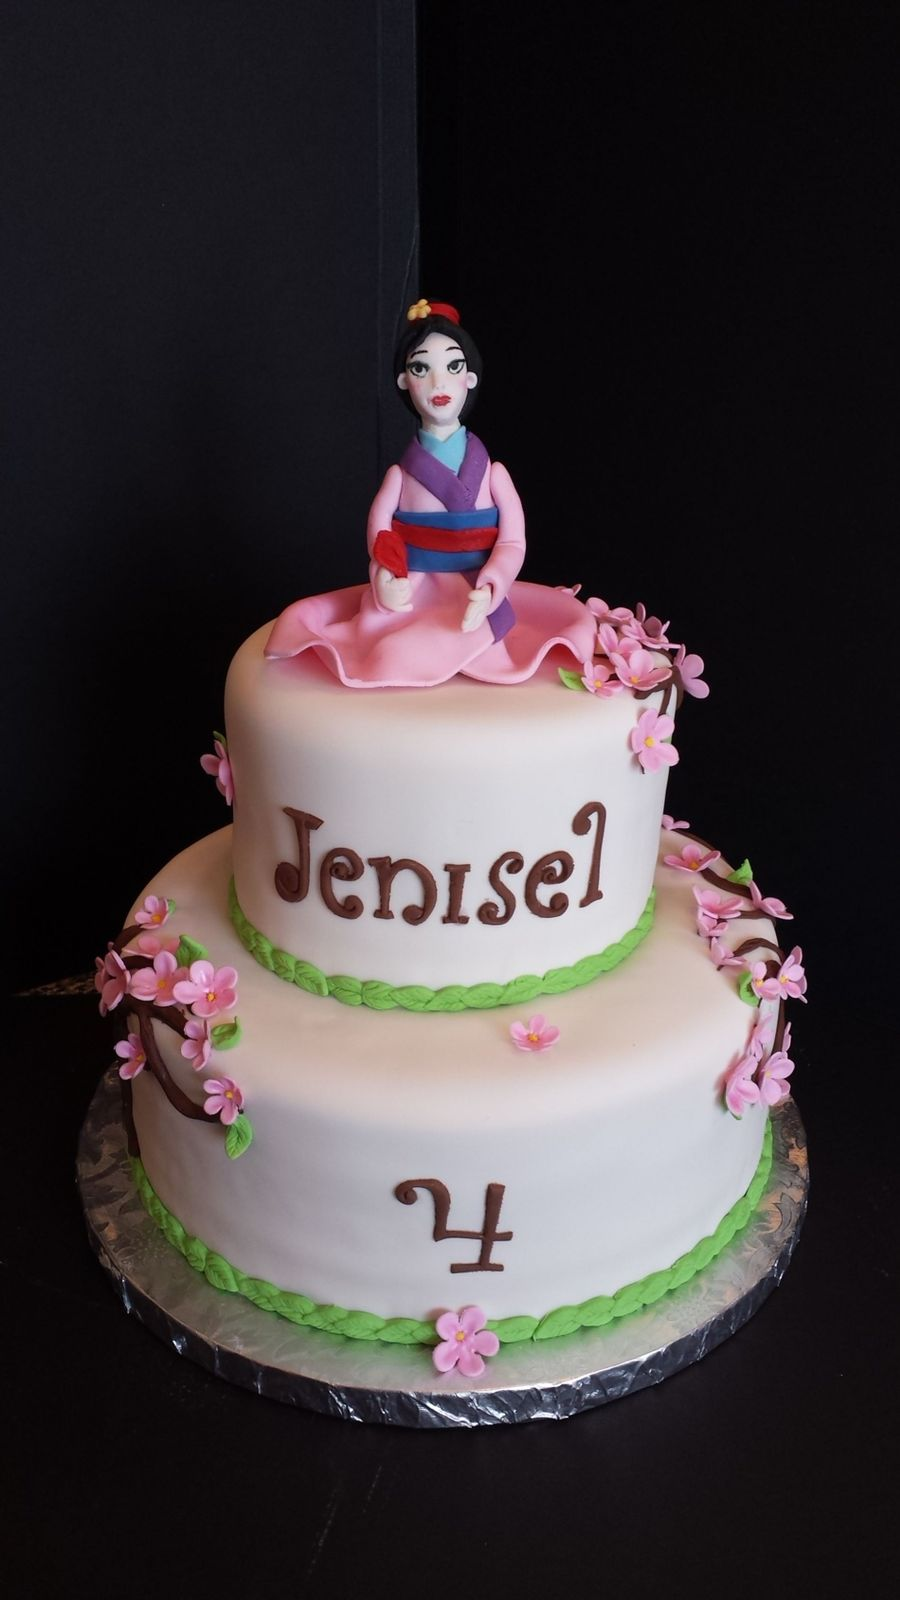 Tremendous Mulan Birthday Cake Cakecentral Com Funny Birthday Cards Online Bapapcheapnameinfo